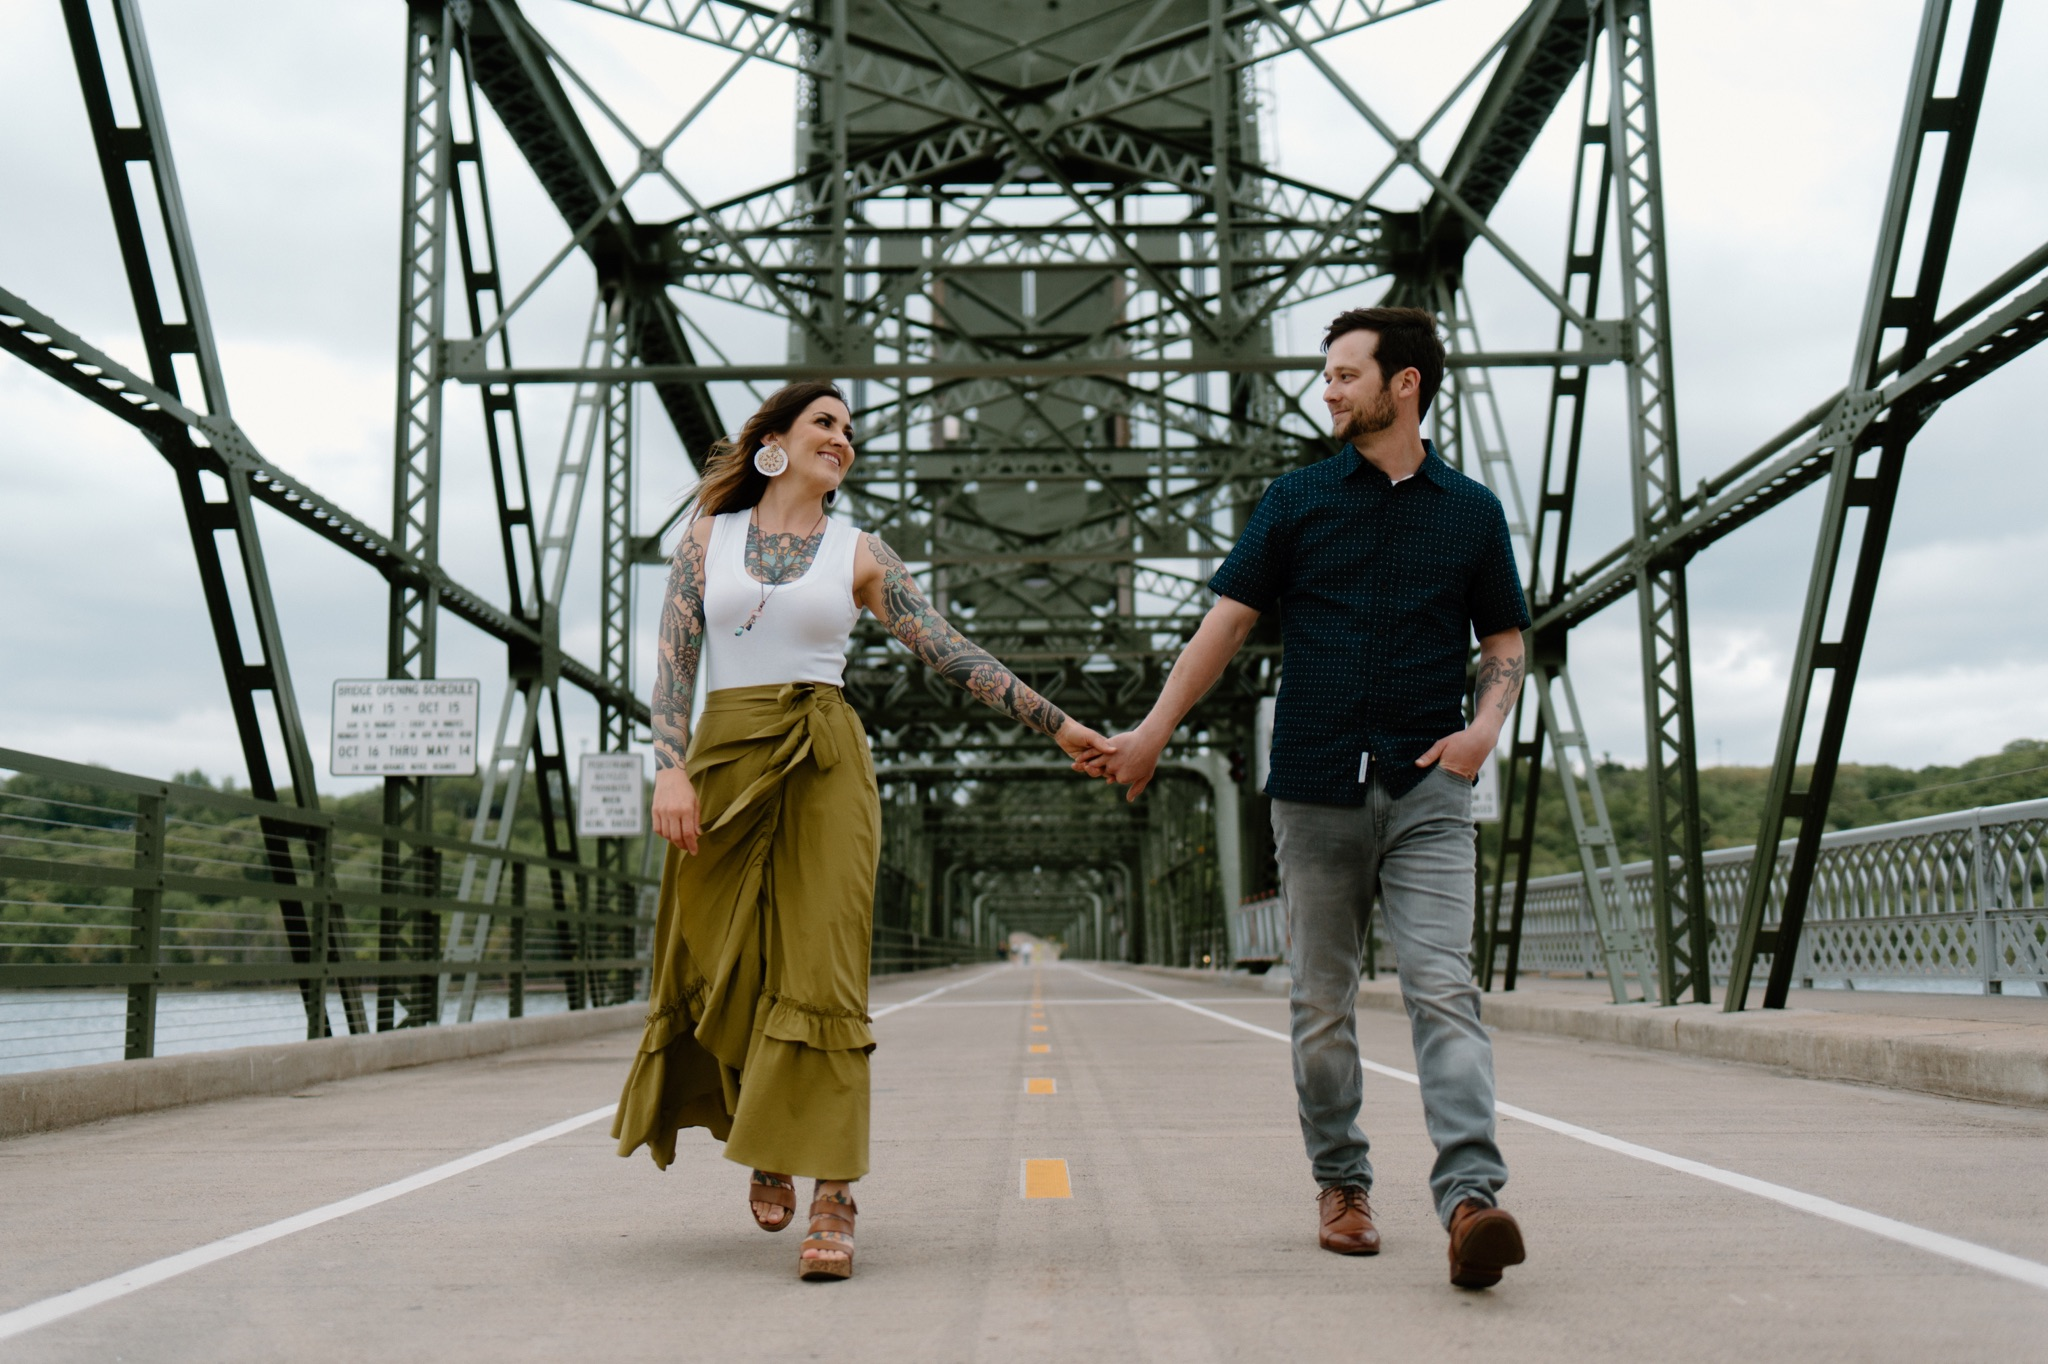 man and woman walking on a bridge and holding hands